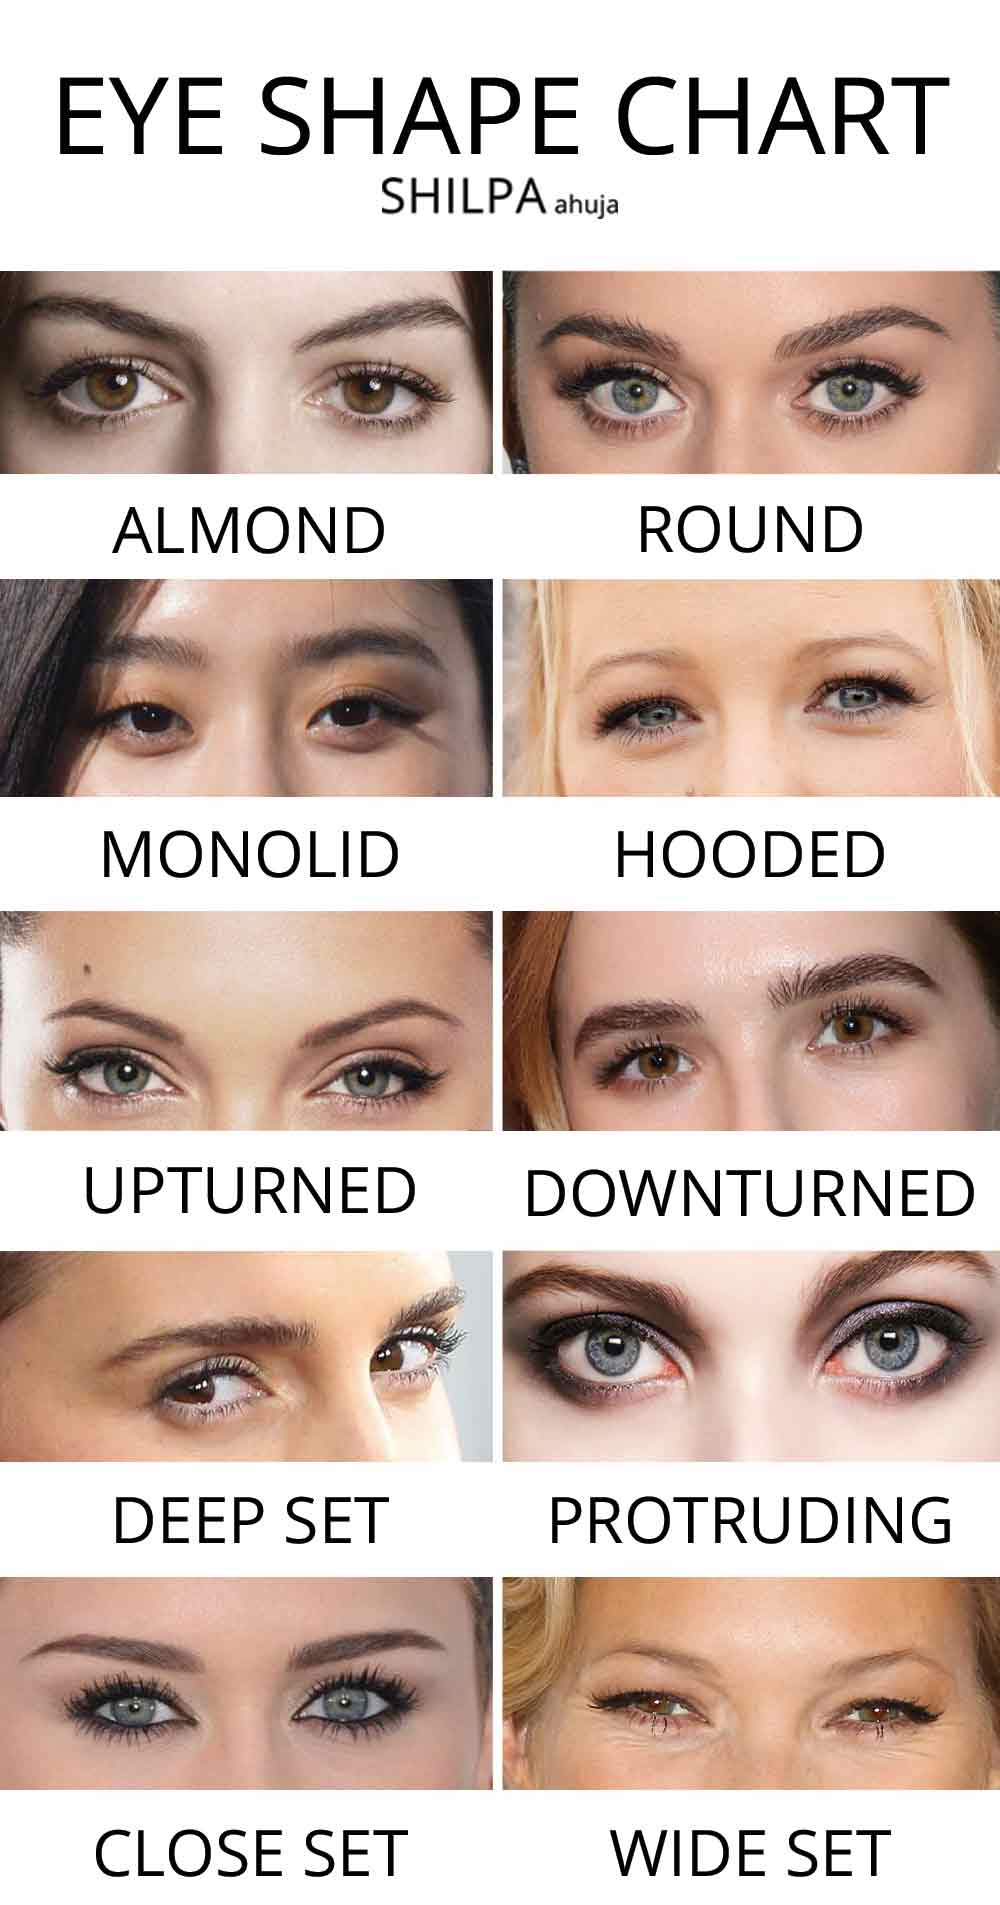 Hooded Eye Makeup Diagram.Makeup For Downturned Eyes Eyeliner Steps Eyeshadow Tips